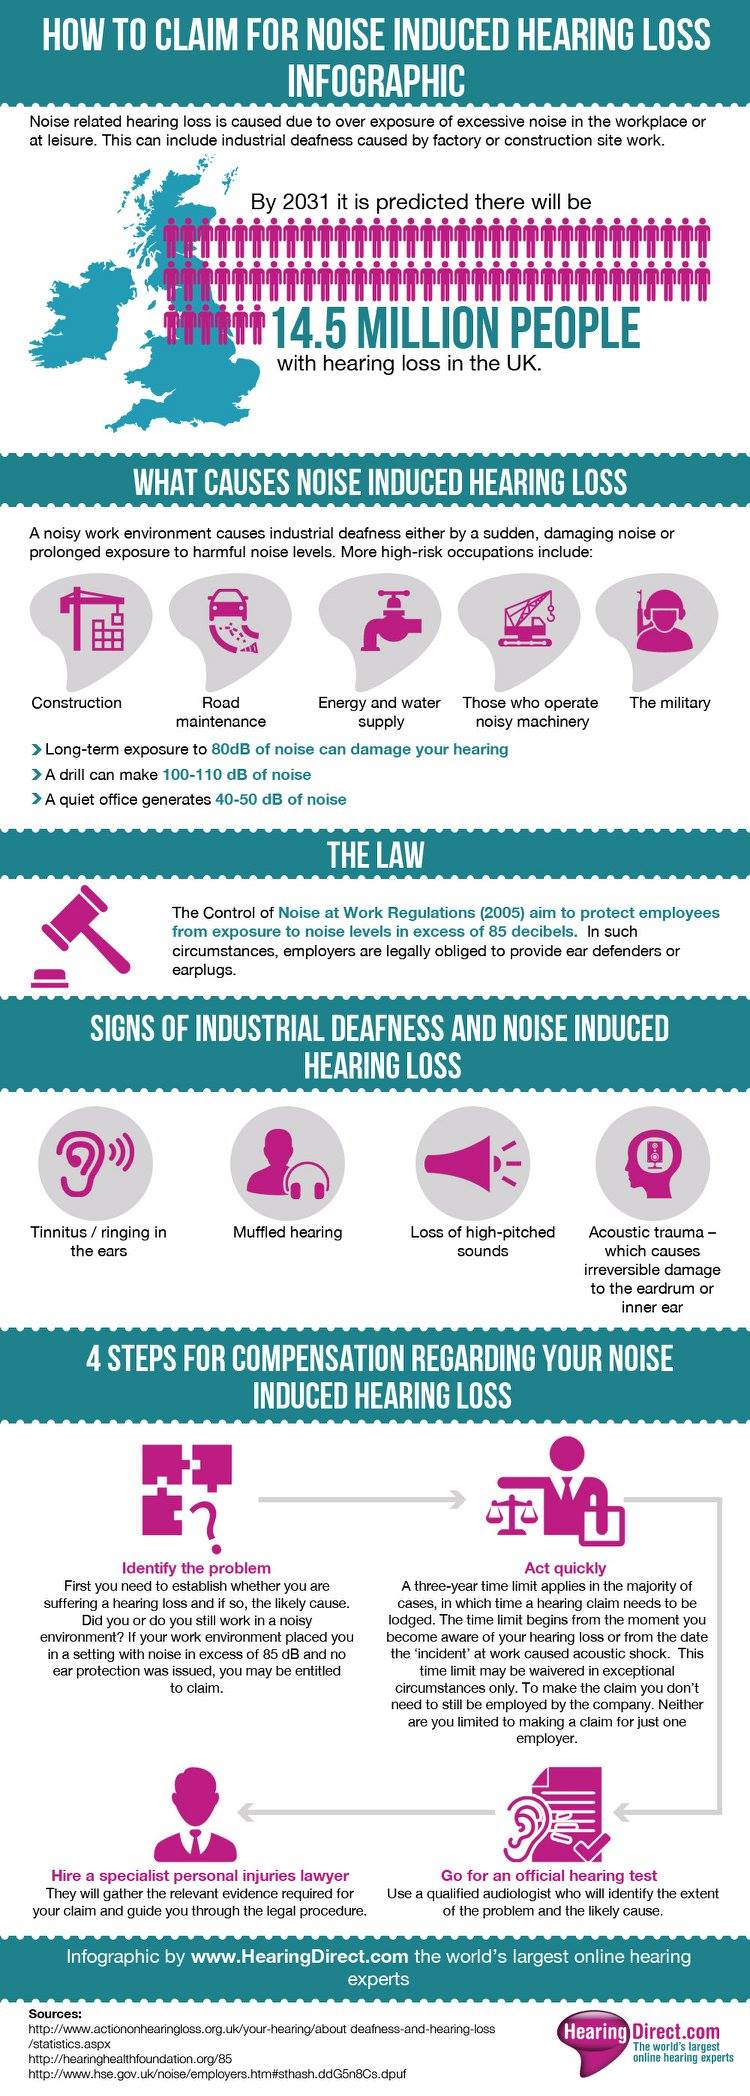 Infographic of noise induced hearing loss - text below